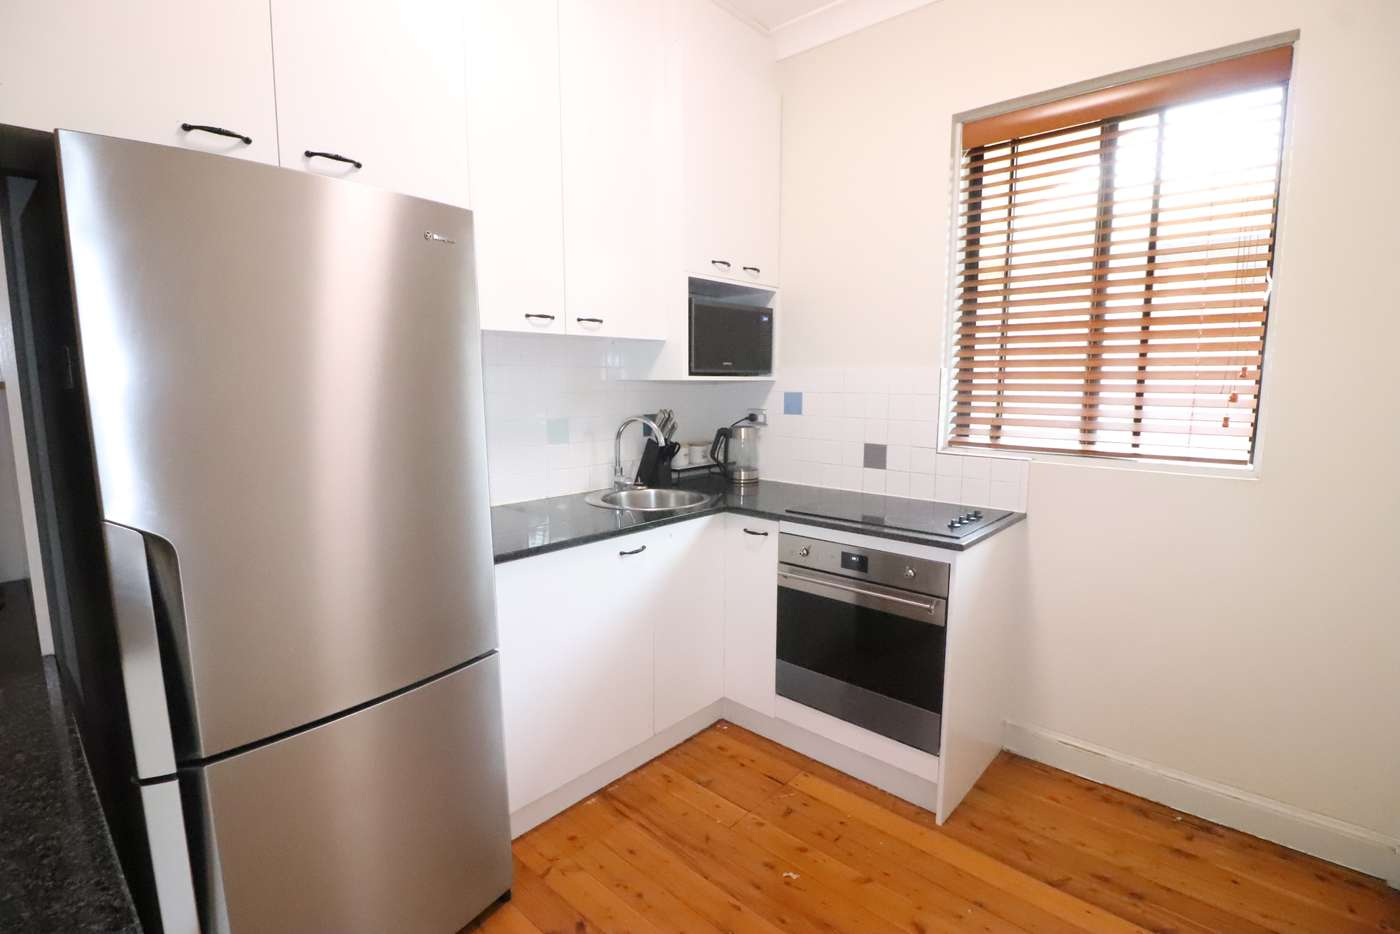 Sixth view of Homely apartment listing, 1/8 Gosport Street, Cronulla NSW 2230